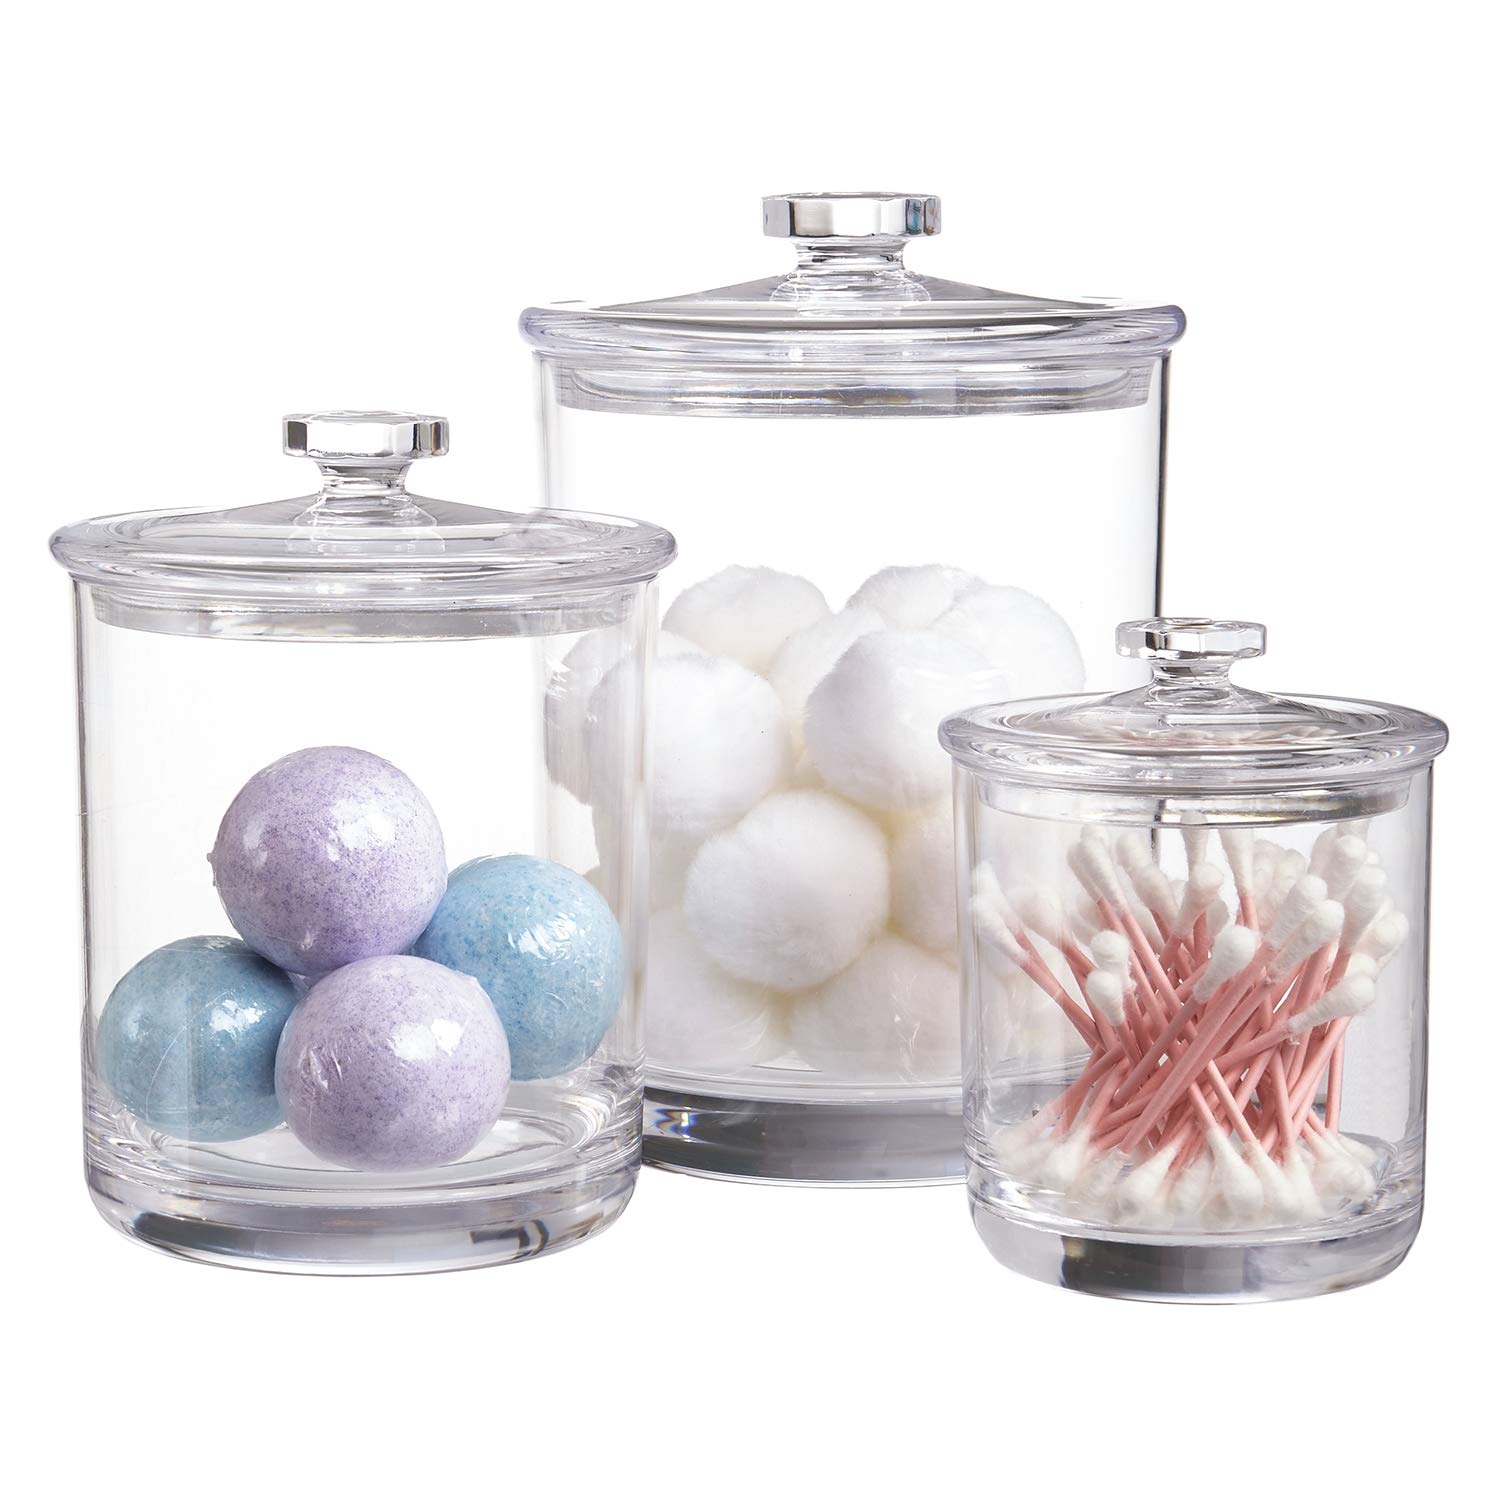 STORi Premium Quality Clear Plastic Apothecary Jars | Set of 3